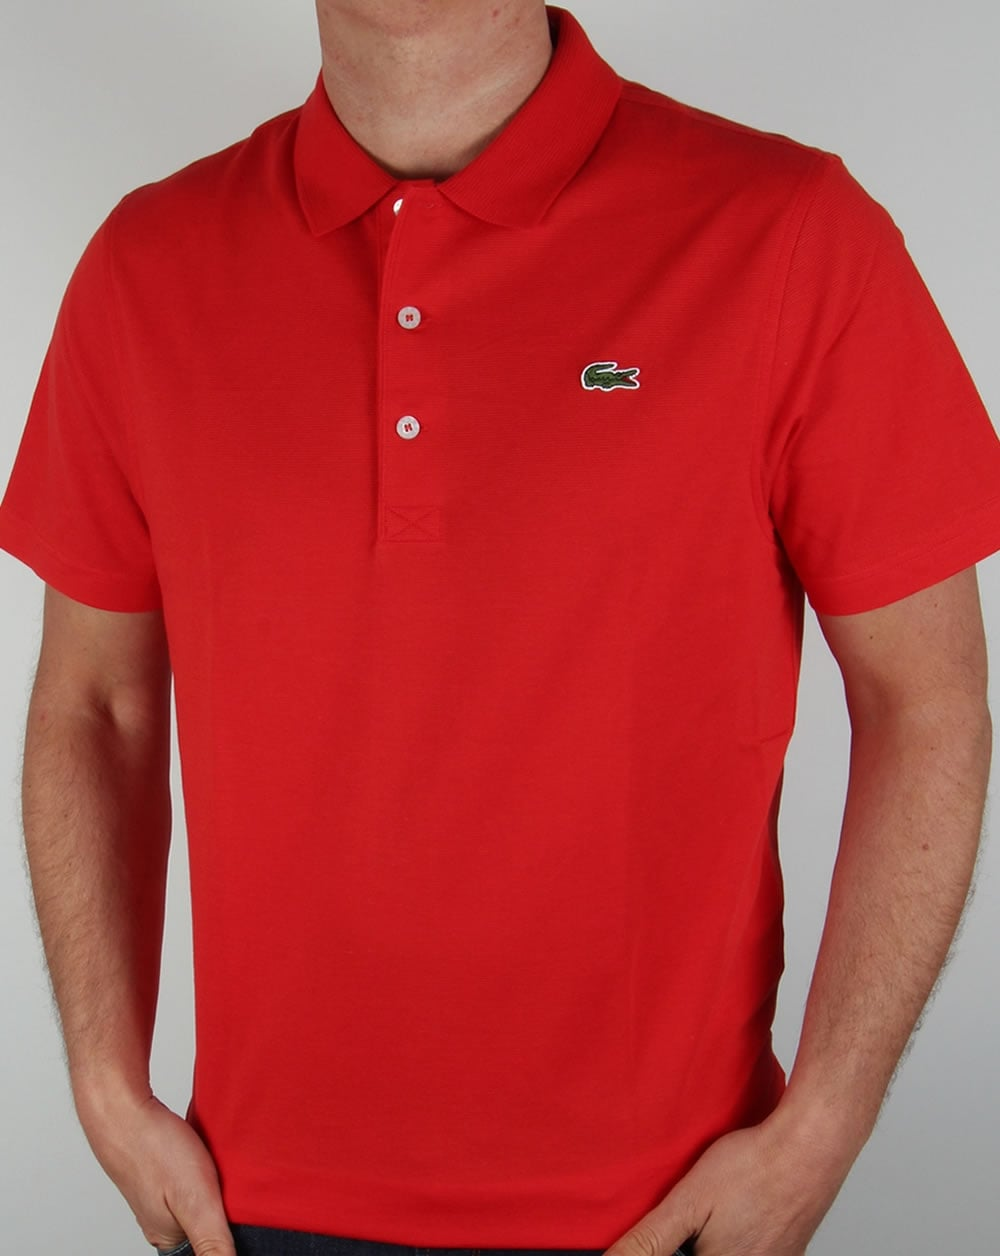 lacoste red polo shirt sport mens vintage old skool. Black Bedroom Furniture Sets. Home Design Ideas